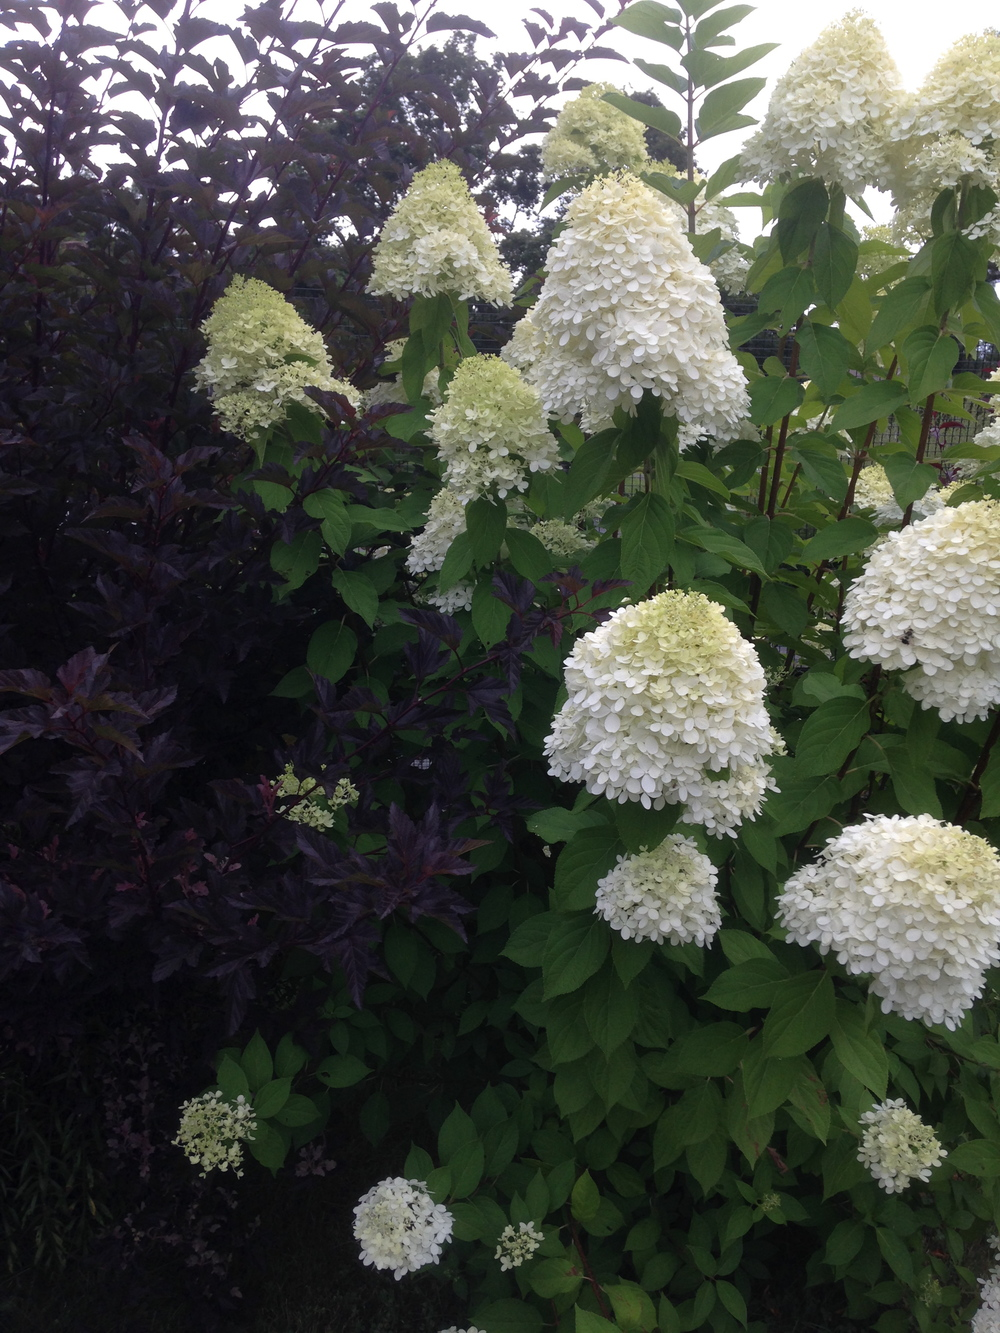 Love the smell of honey these hydrangeas drag in!